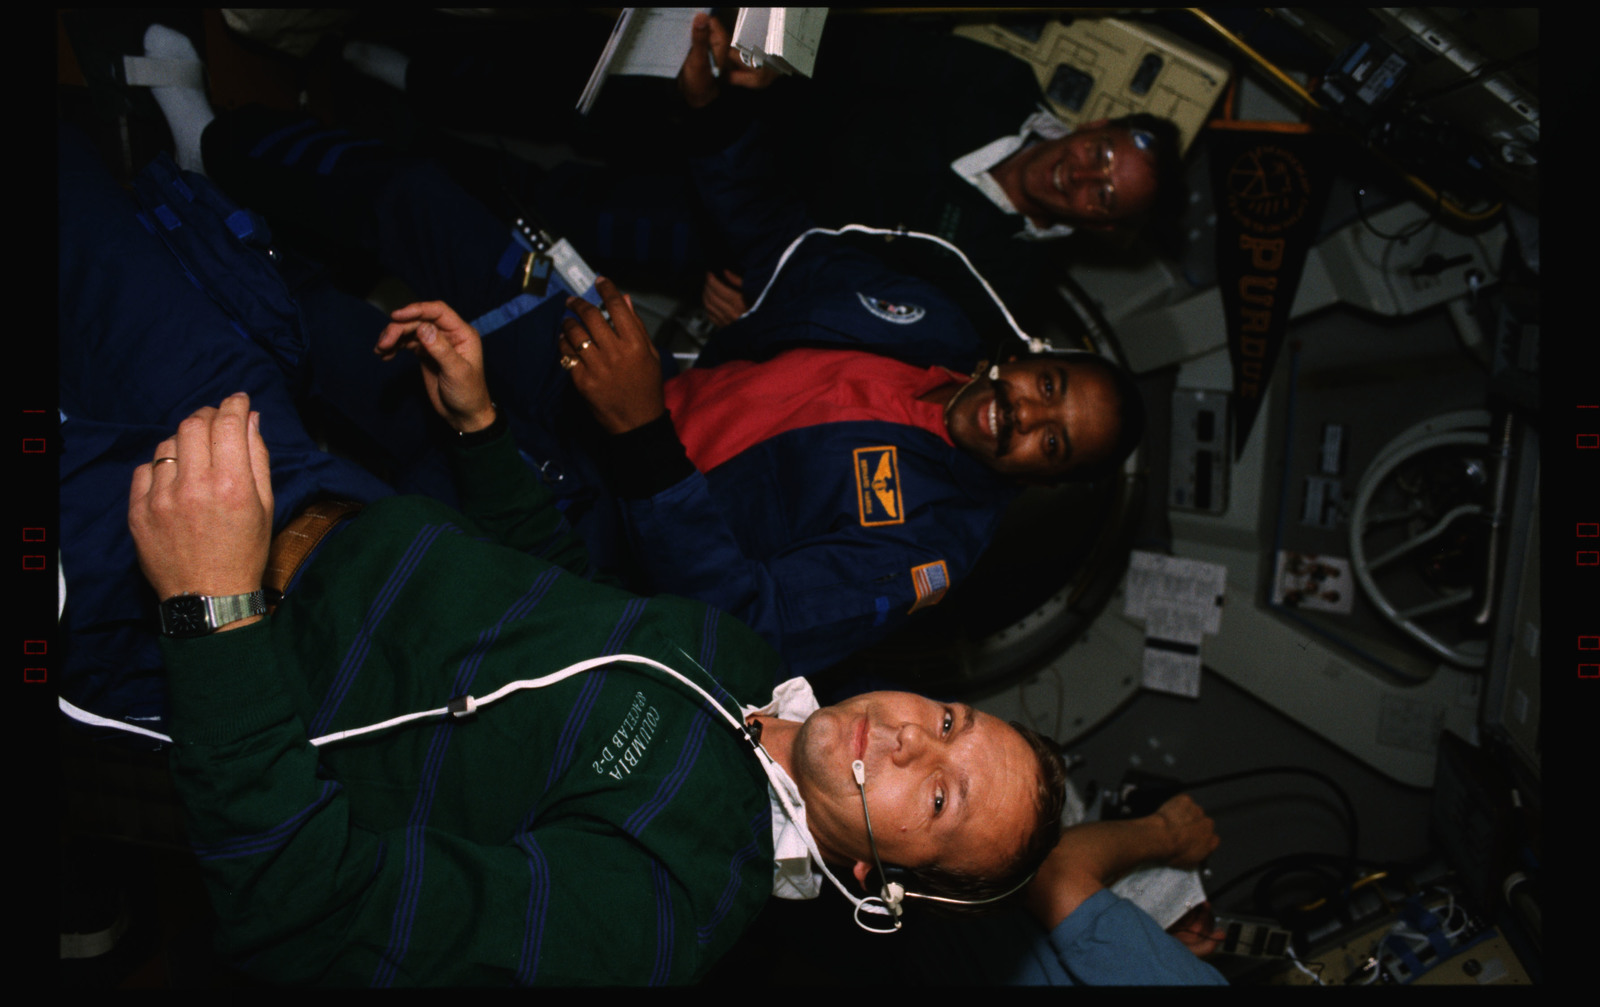 STS055-227-001 - STS-055 - Candid view of crewmembers in the D-2 Spacelab.